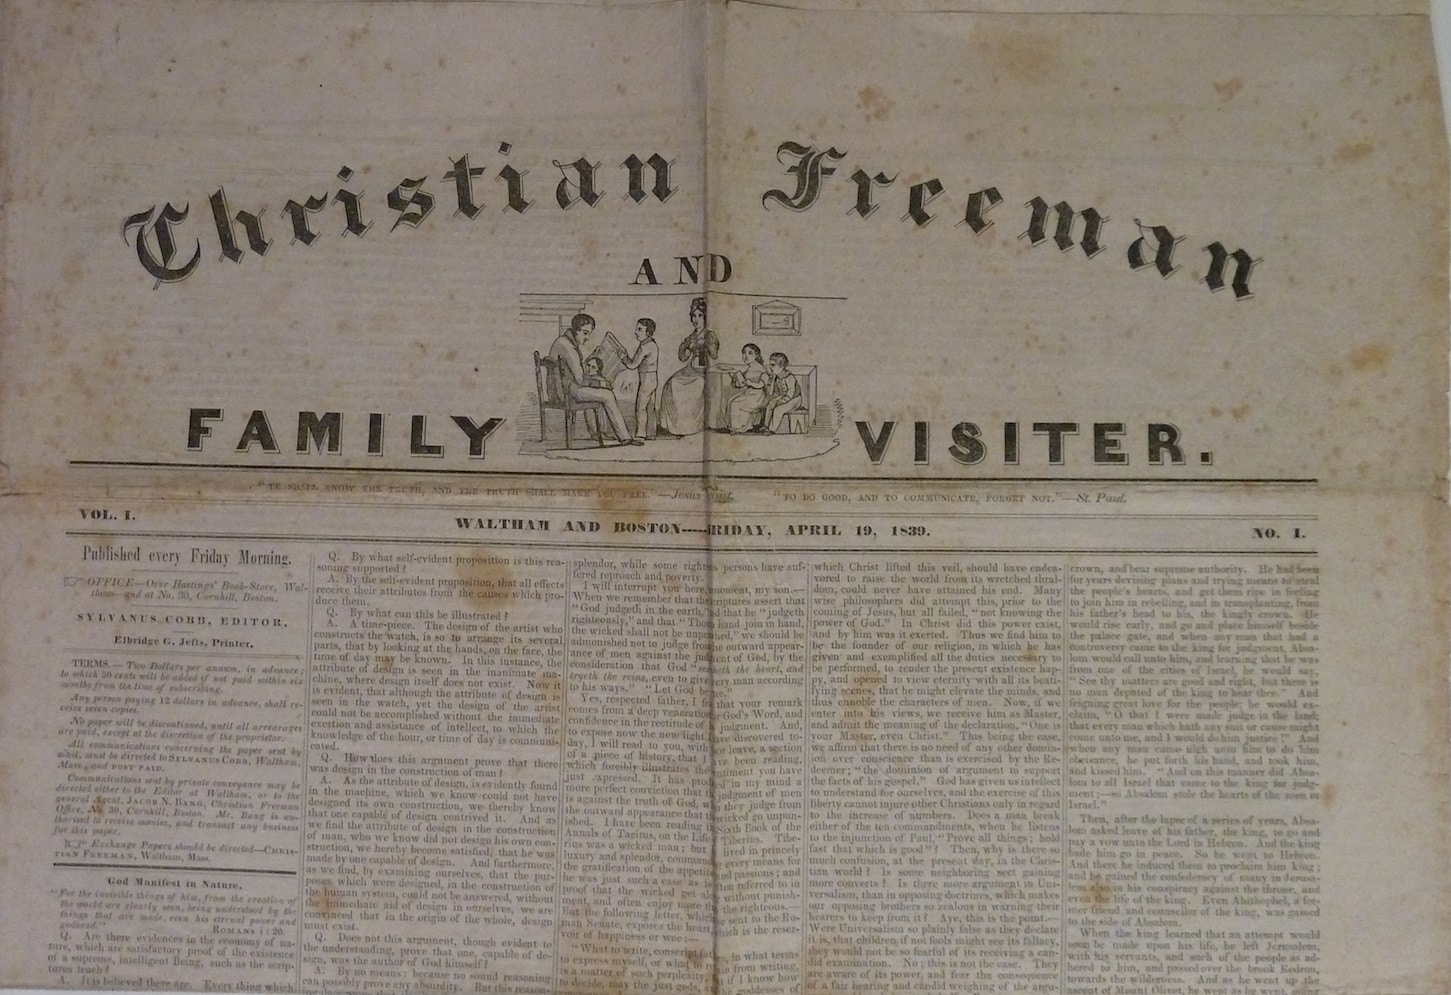 Christian Freeman and Family Visitor